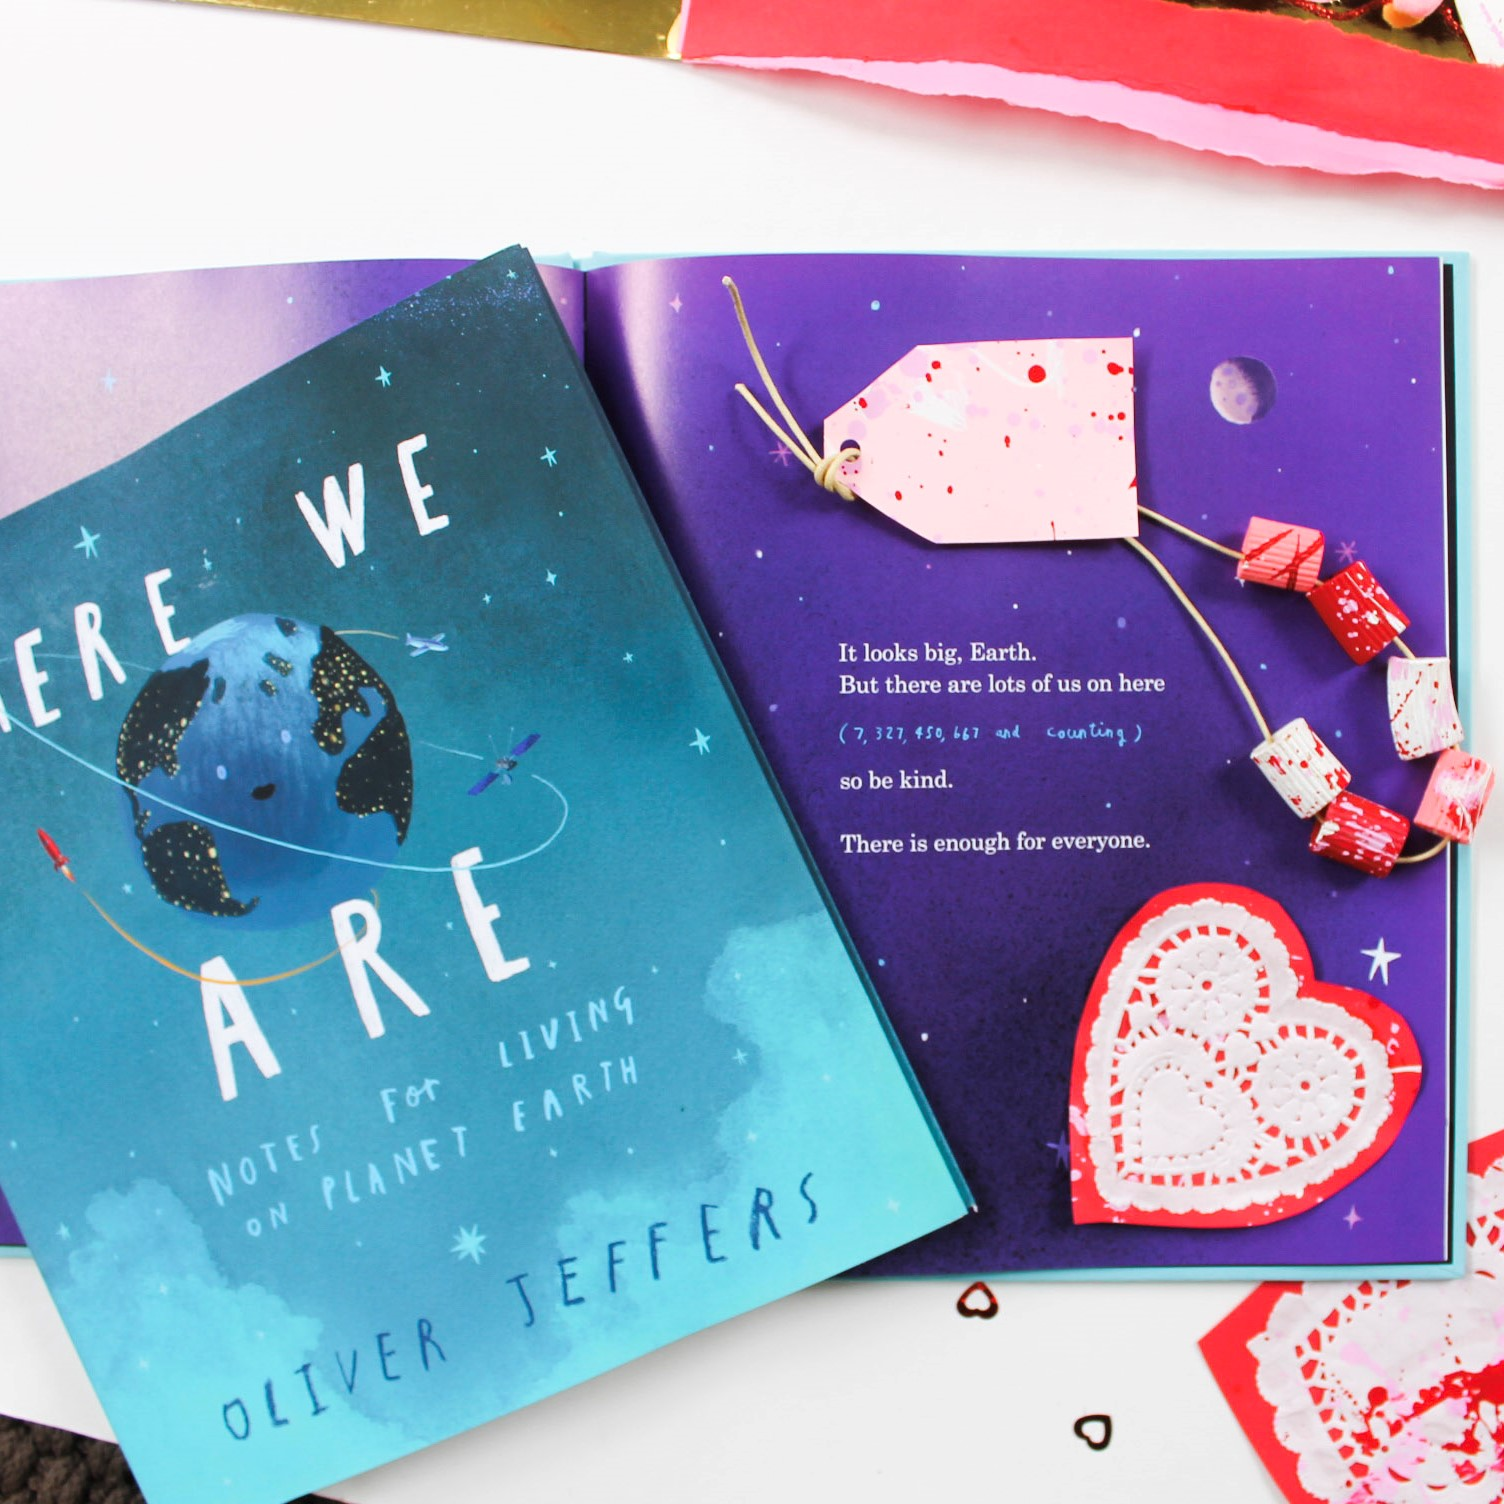 here-we-are-earth-stewardship-inside-pages-kidlit.jpg